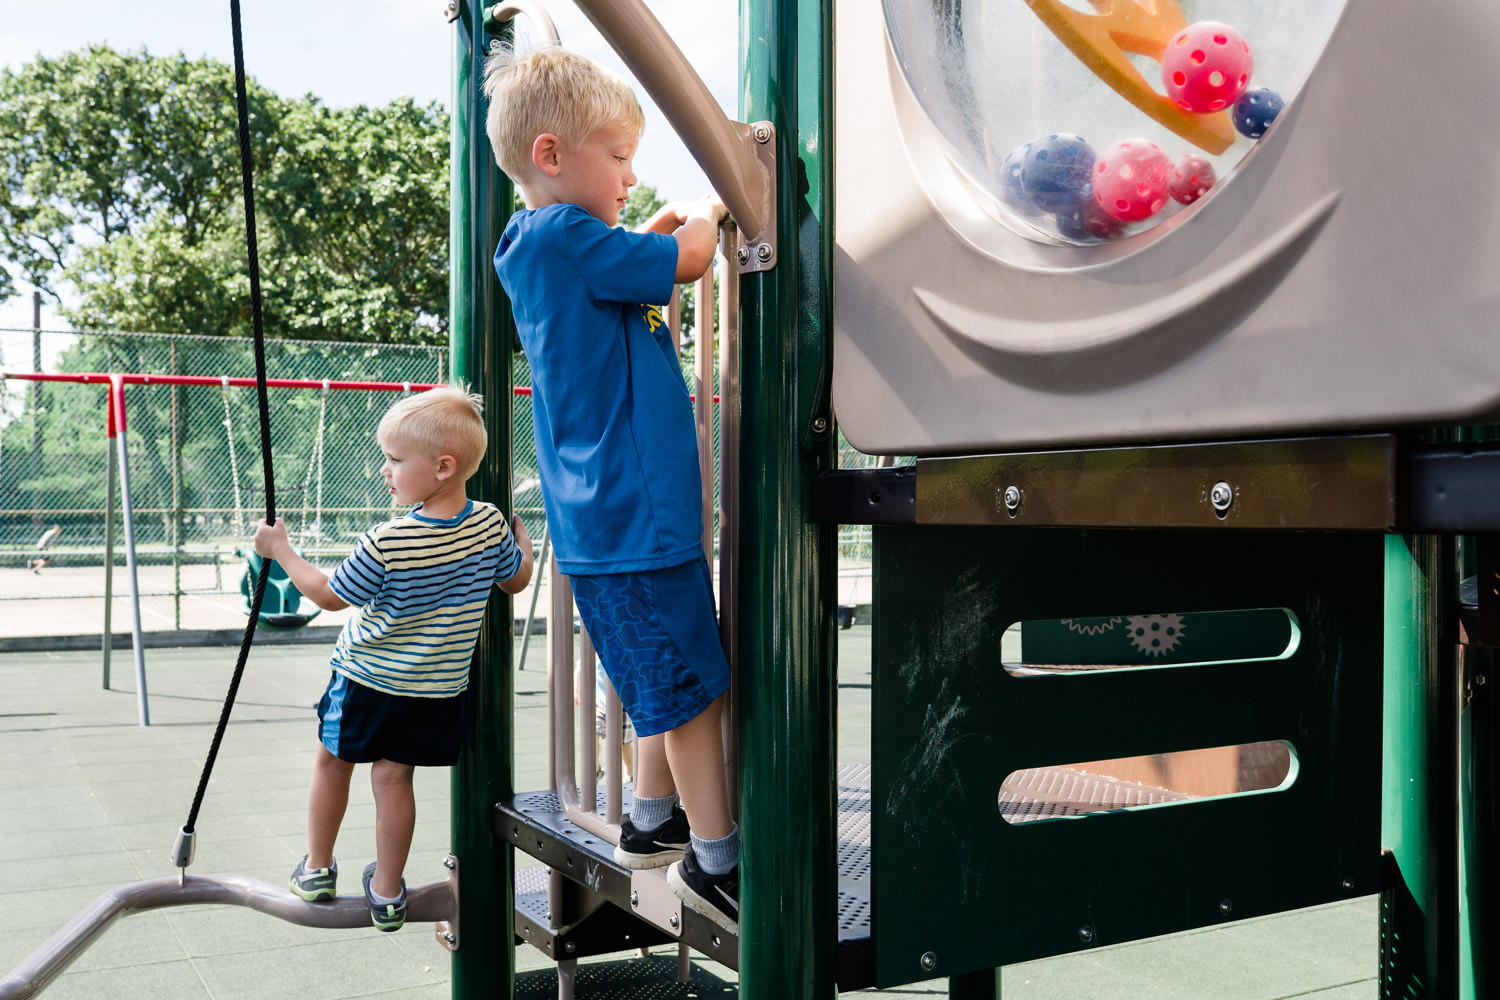 Two little boys play on a playground structure.